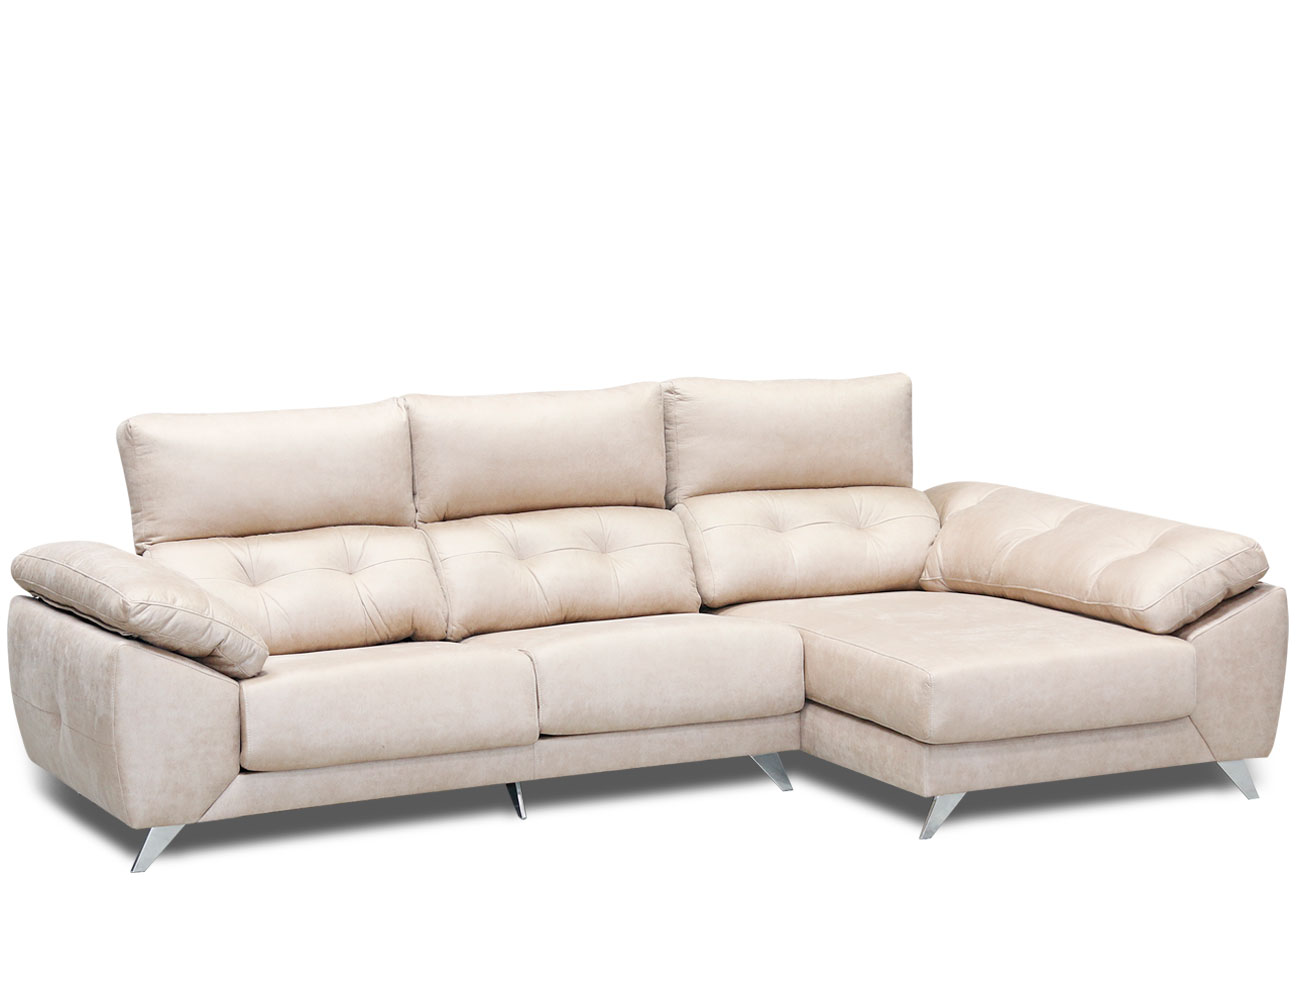 Sofa chaiselongue capitone anti machas gama alta